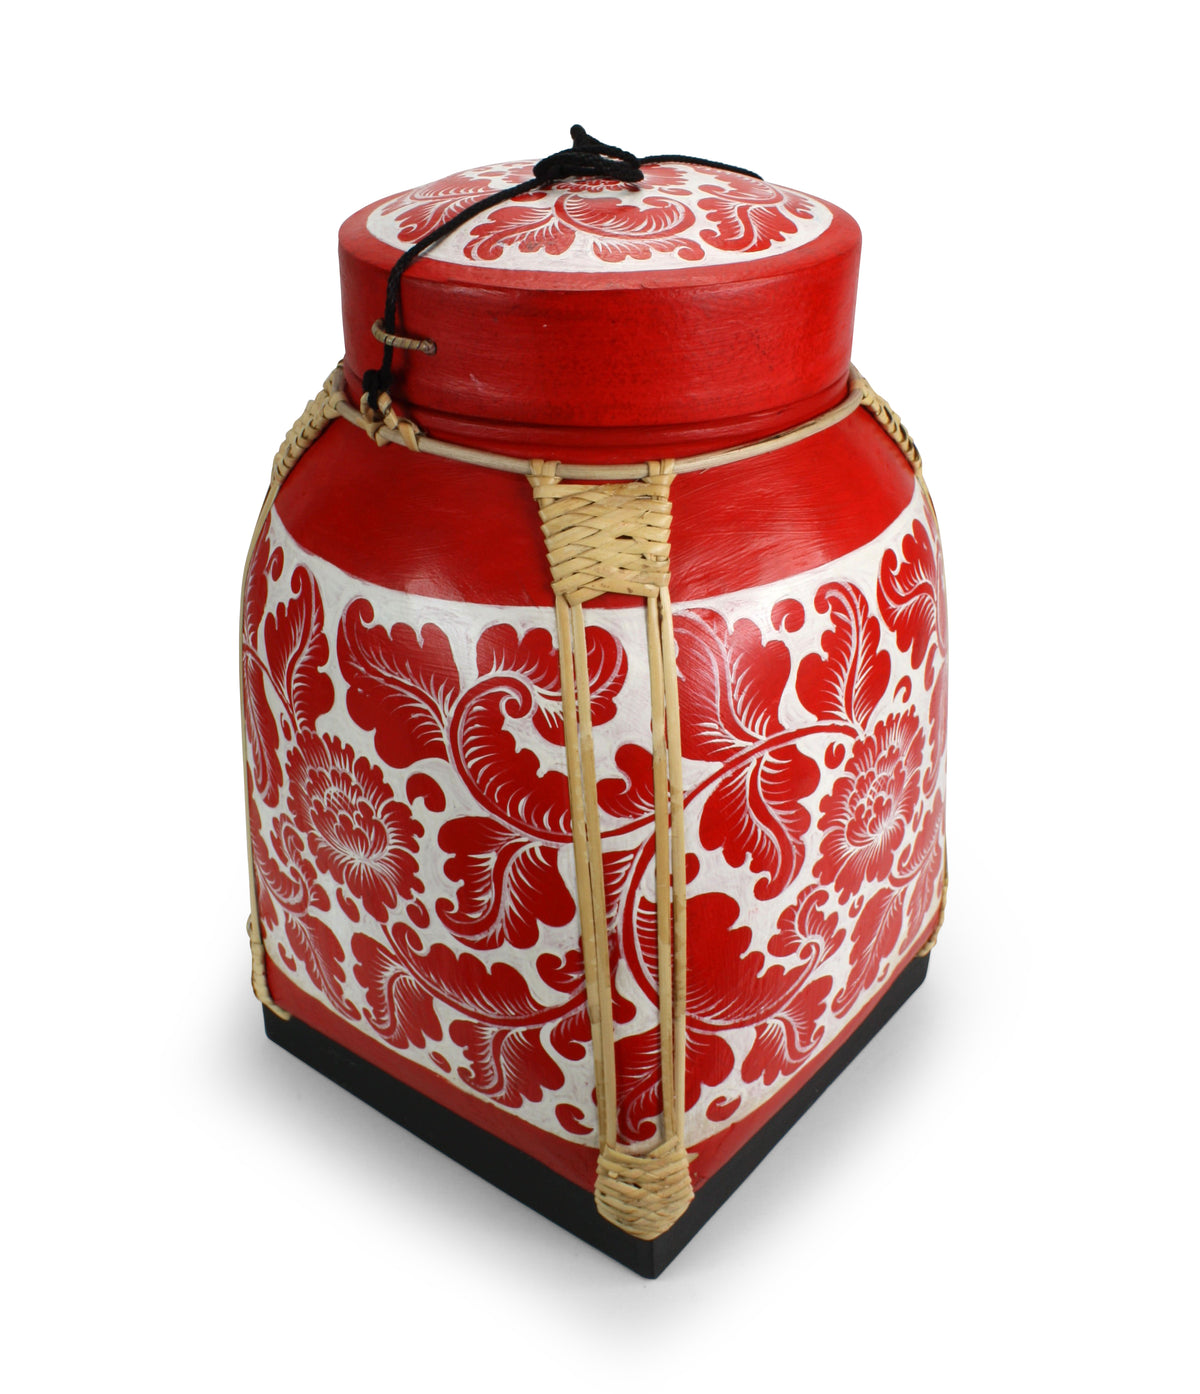 XXL Rice seed box - Extra Extra Large Lacquered Bamboo Basket, 52cm high, REDWH06 - farangshop-co